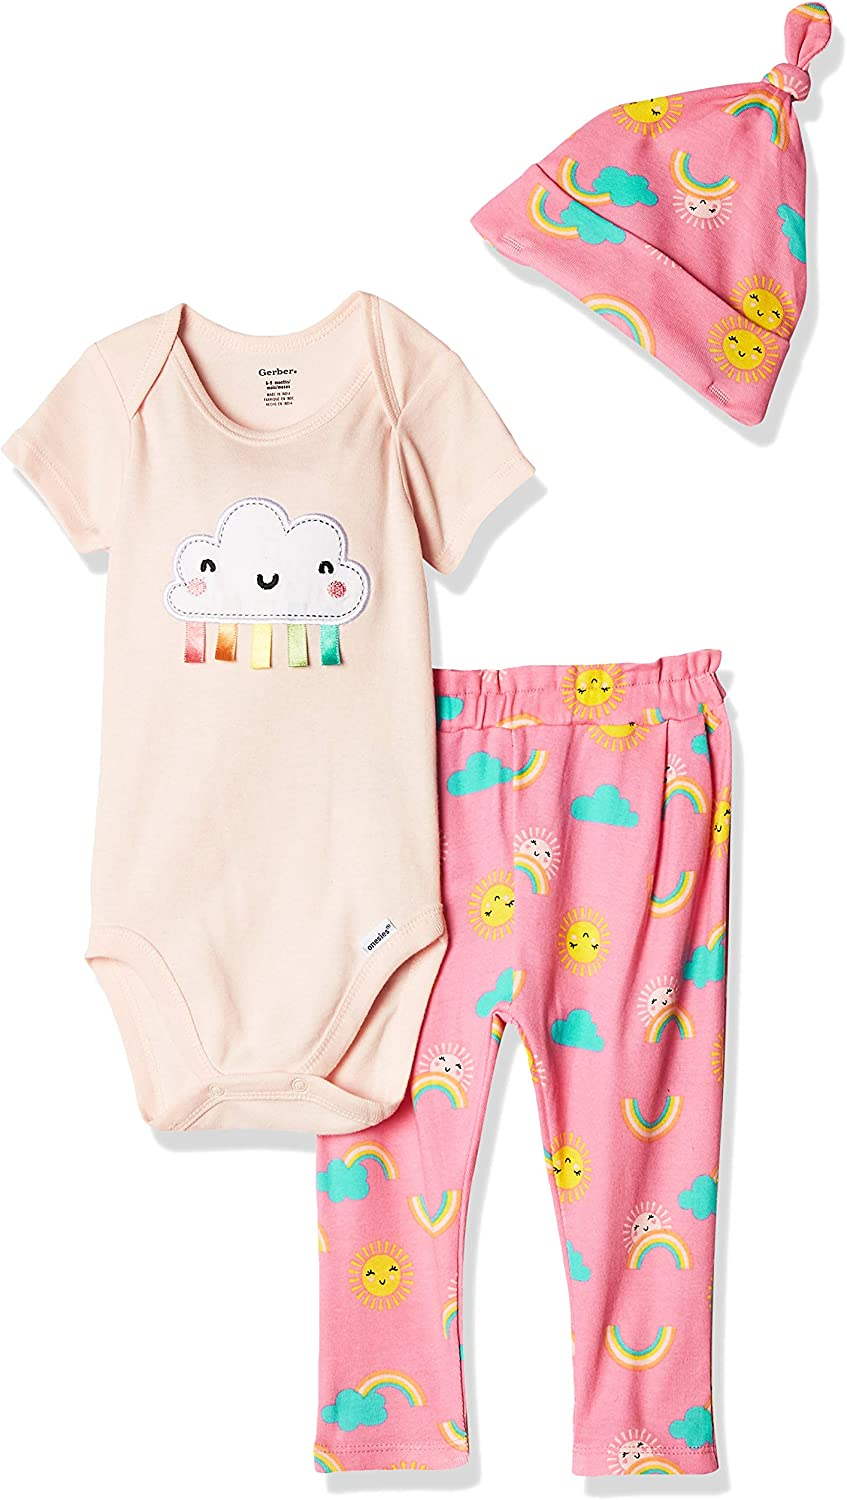 Gerber Baby Girls' 3-Piece Onesies Bodysuit, Pant and Cap Set: Clothing, Shoes & Jewelry